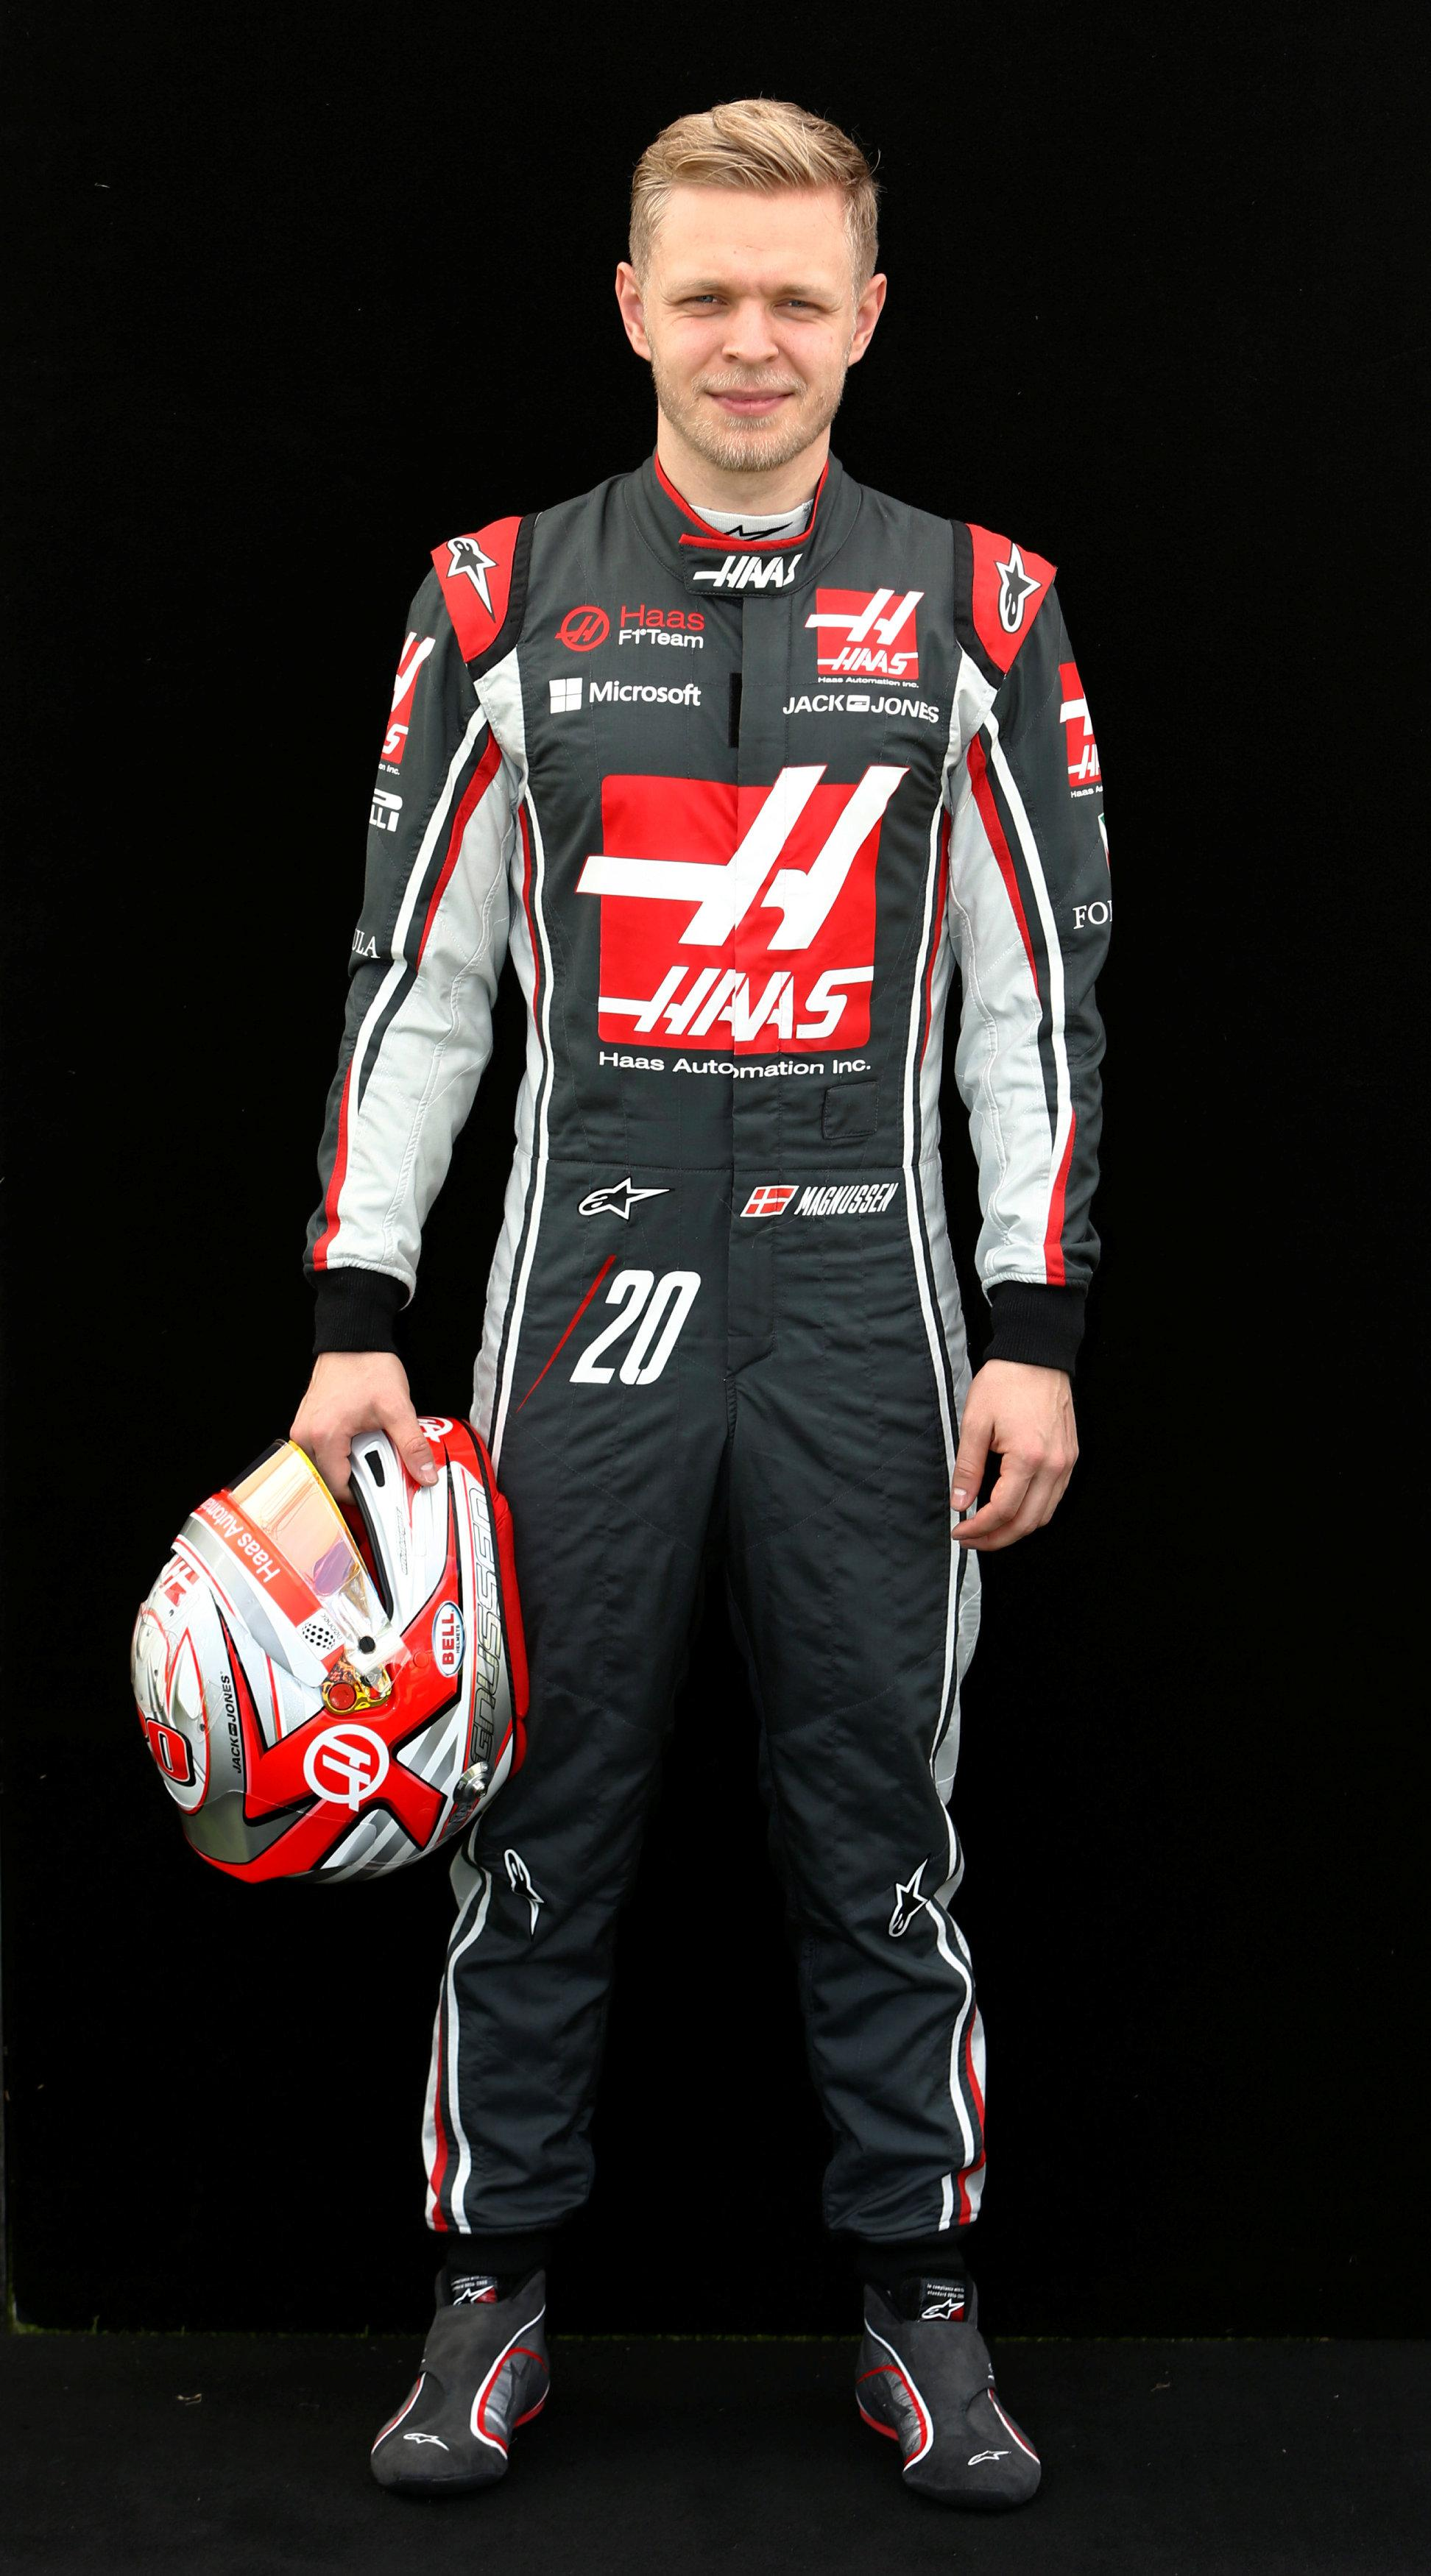 Kevin Magnussen Magnussen enjoying life at Haas Kevin Magnussen, Haas